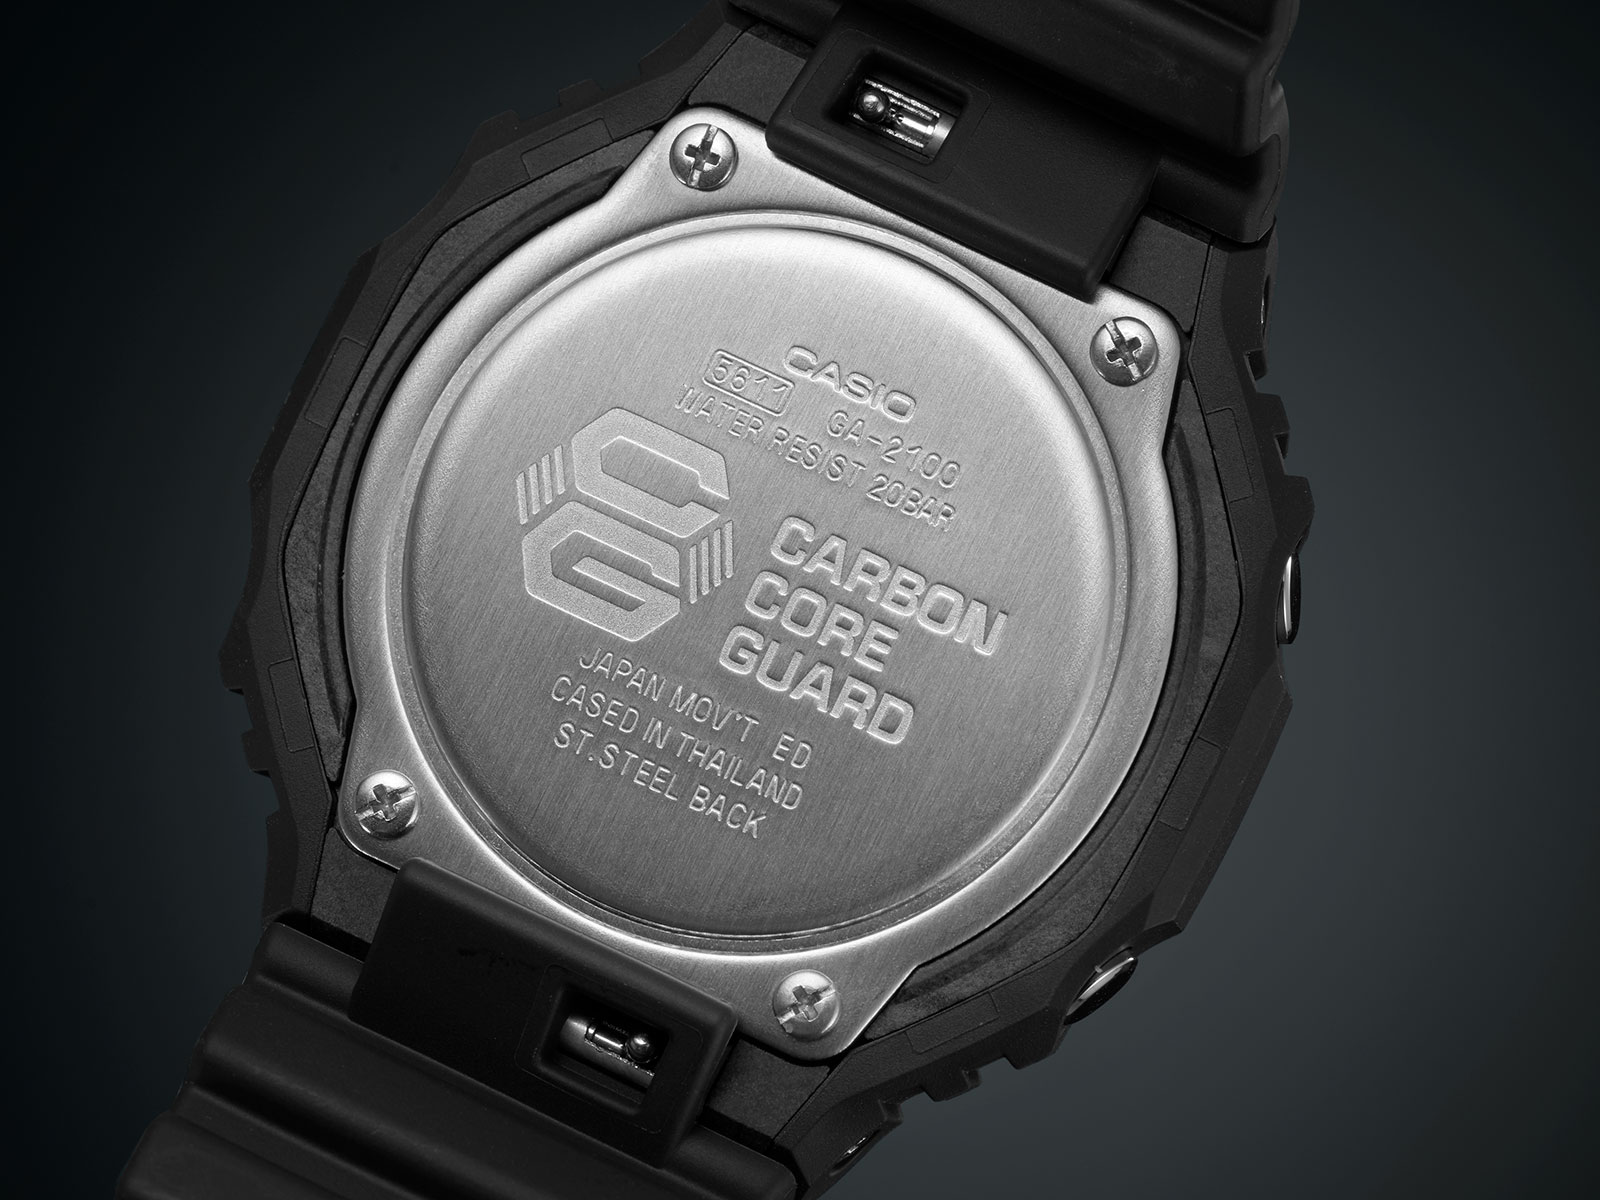 g shock ga-2100 carbon core guard 5